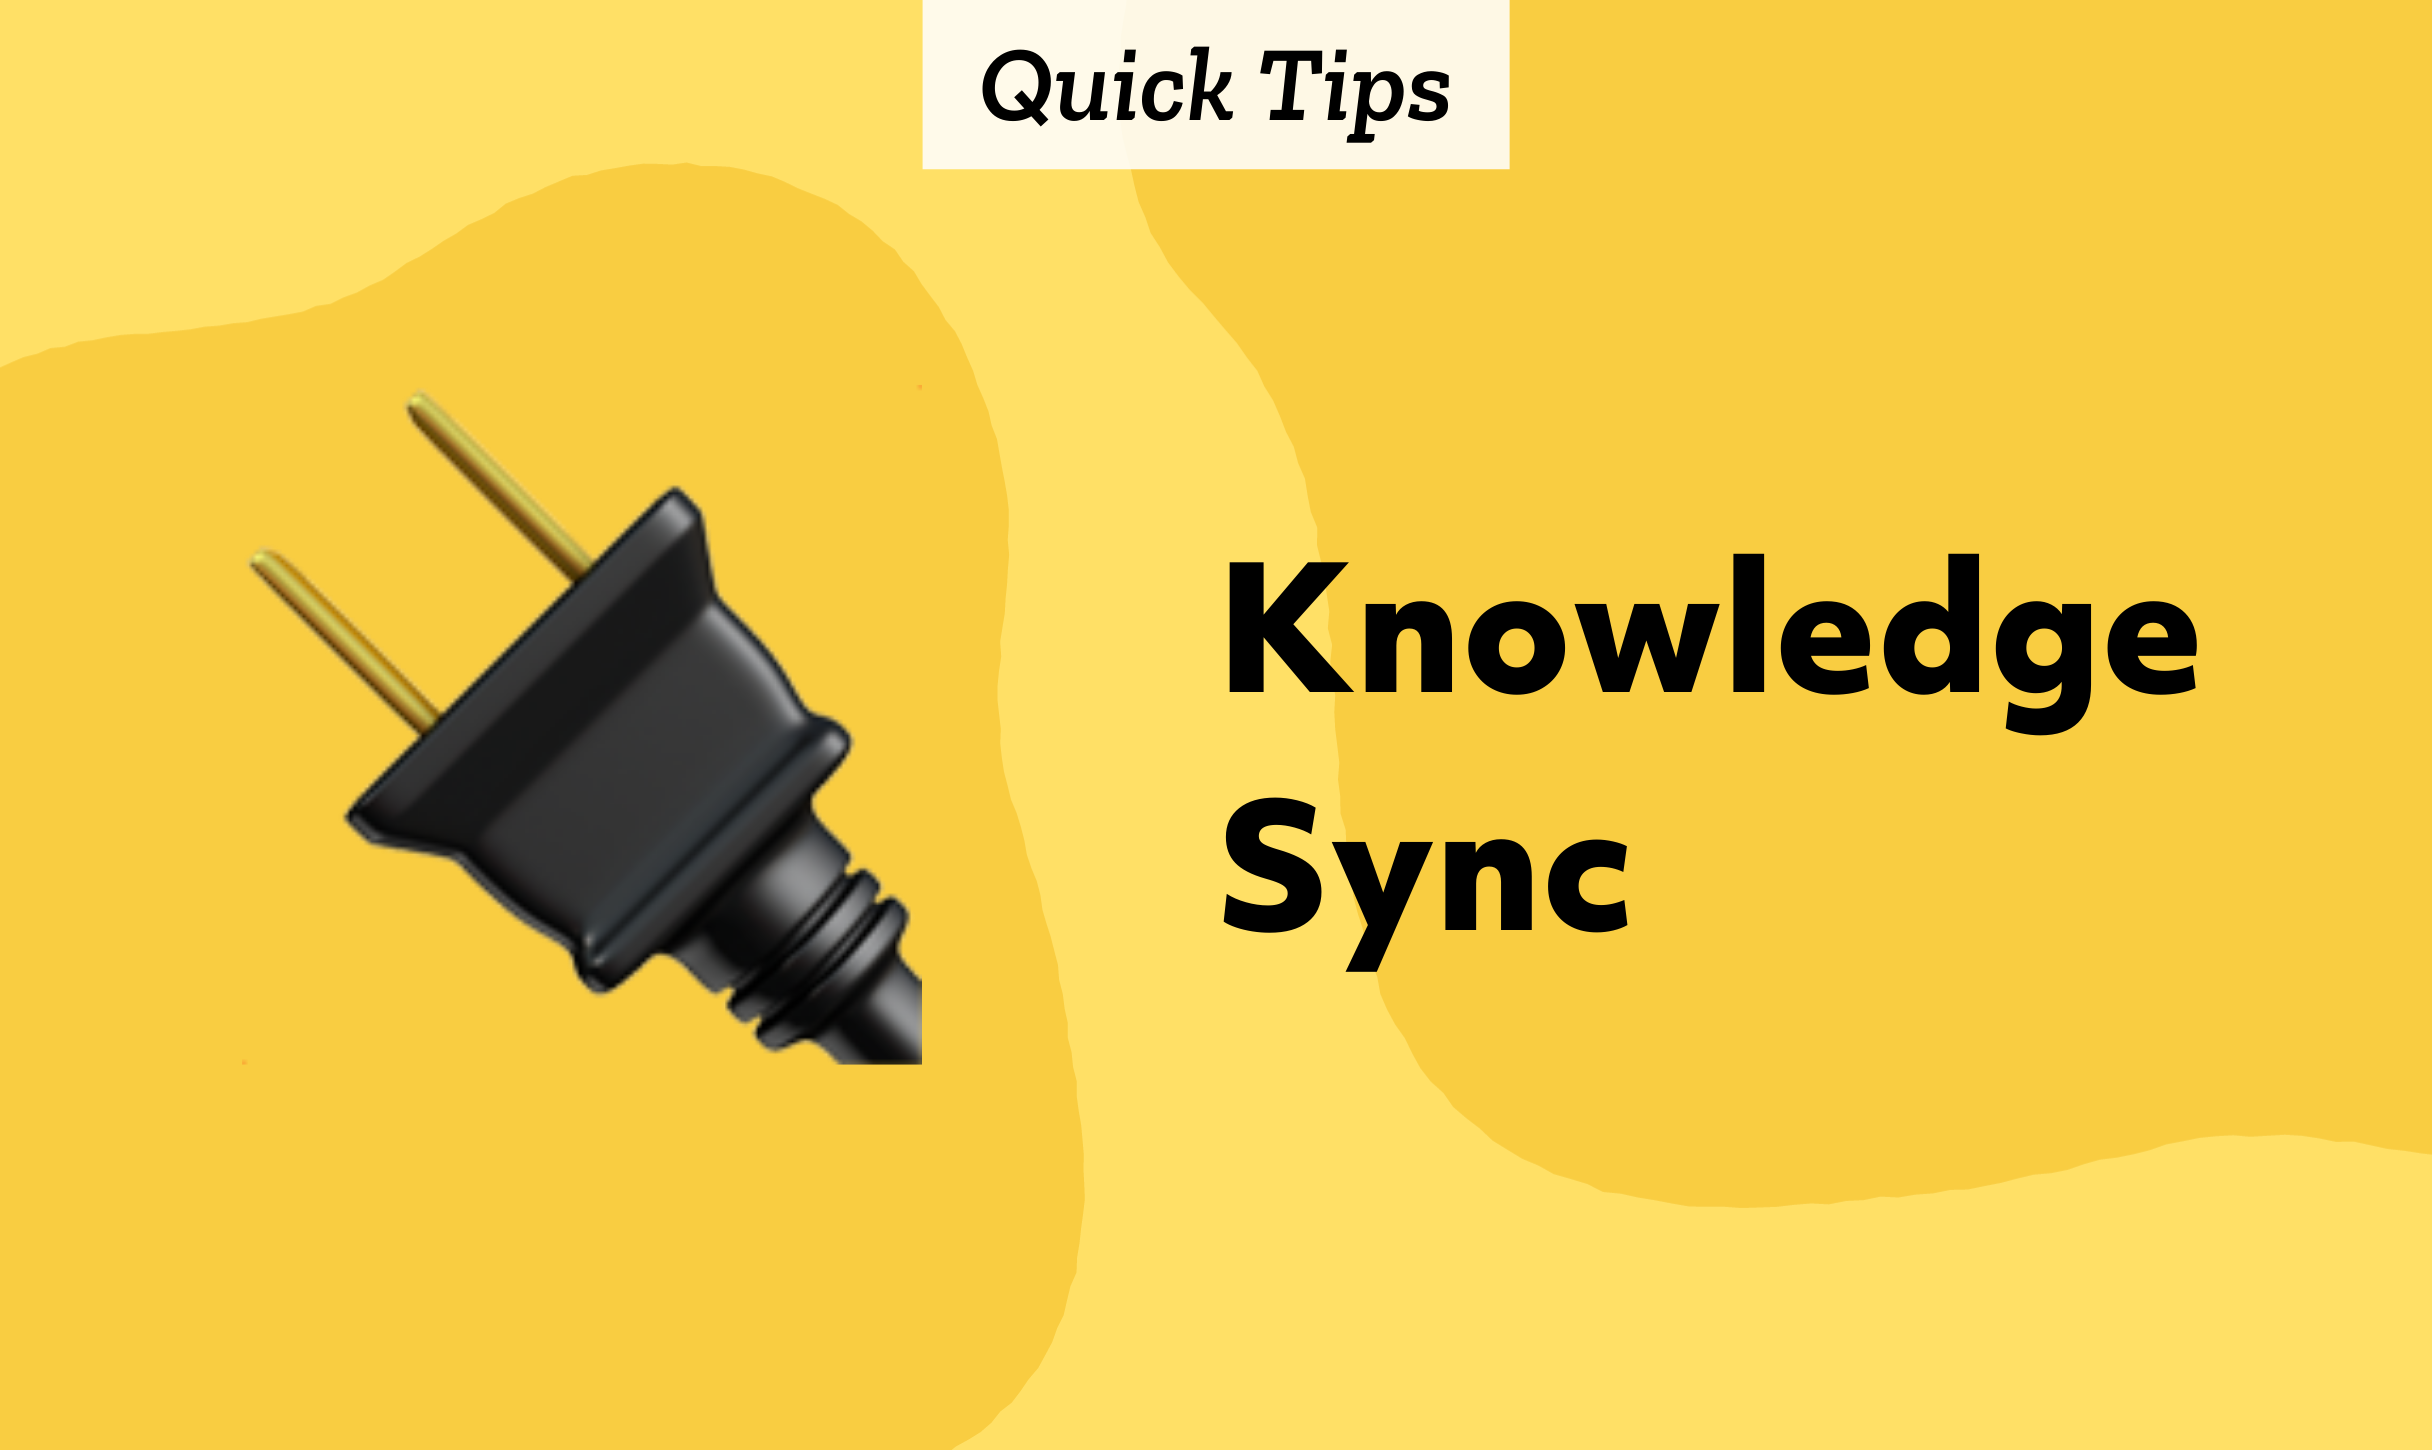 Quick Tips: Knowledge Sync